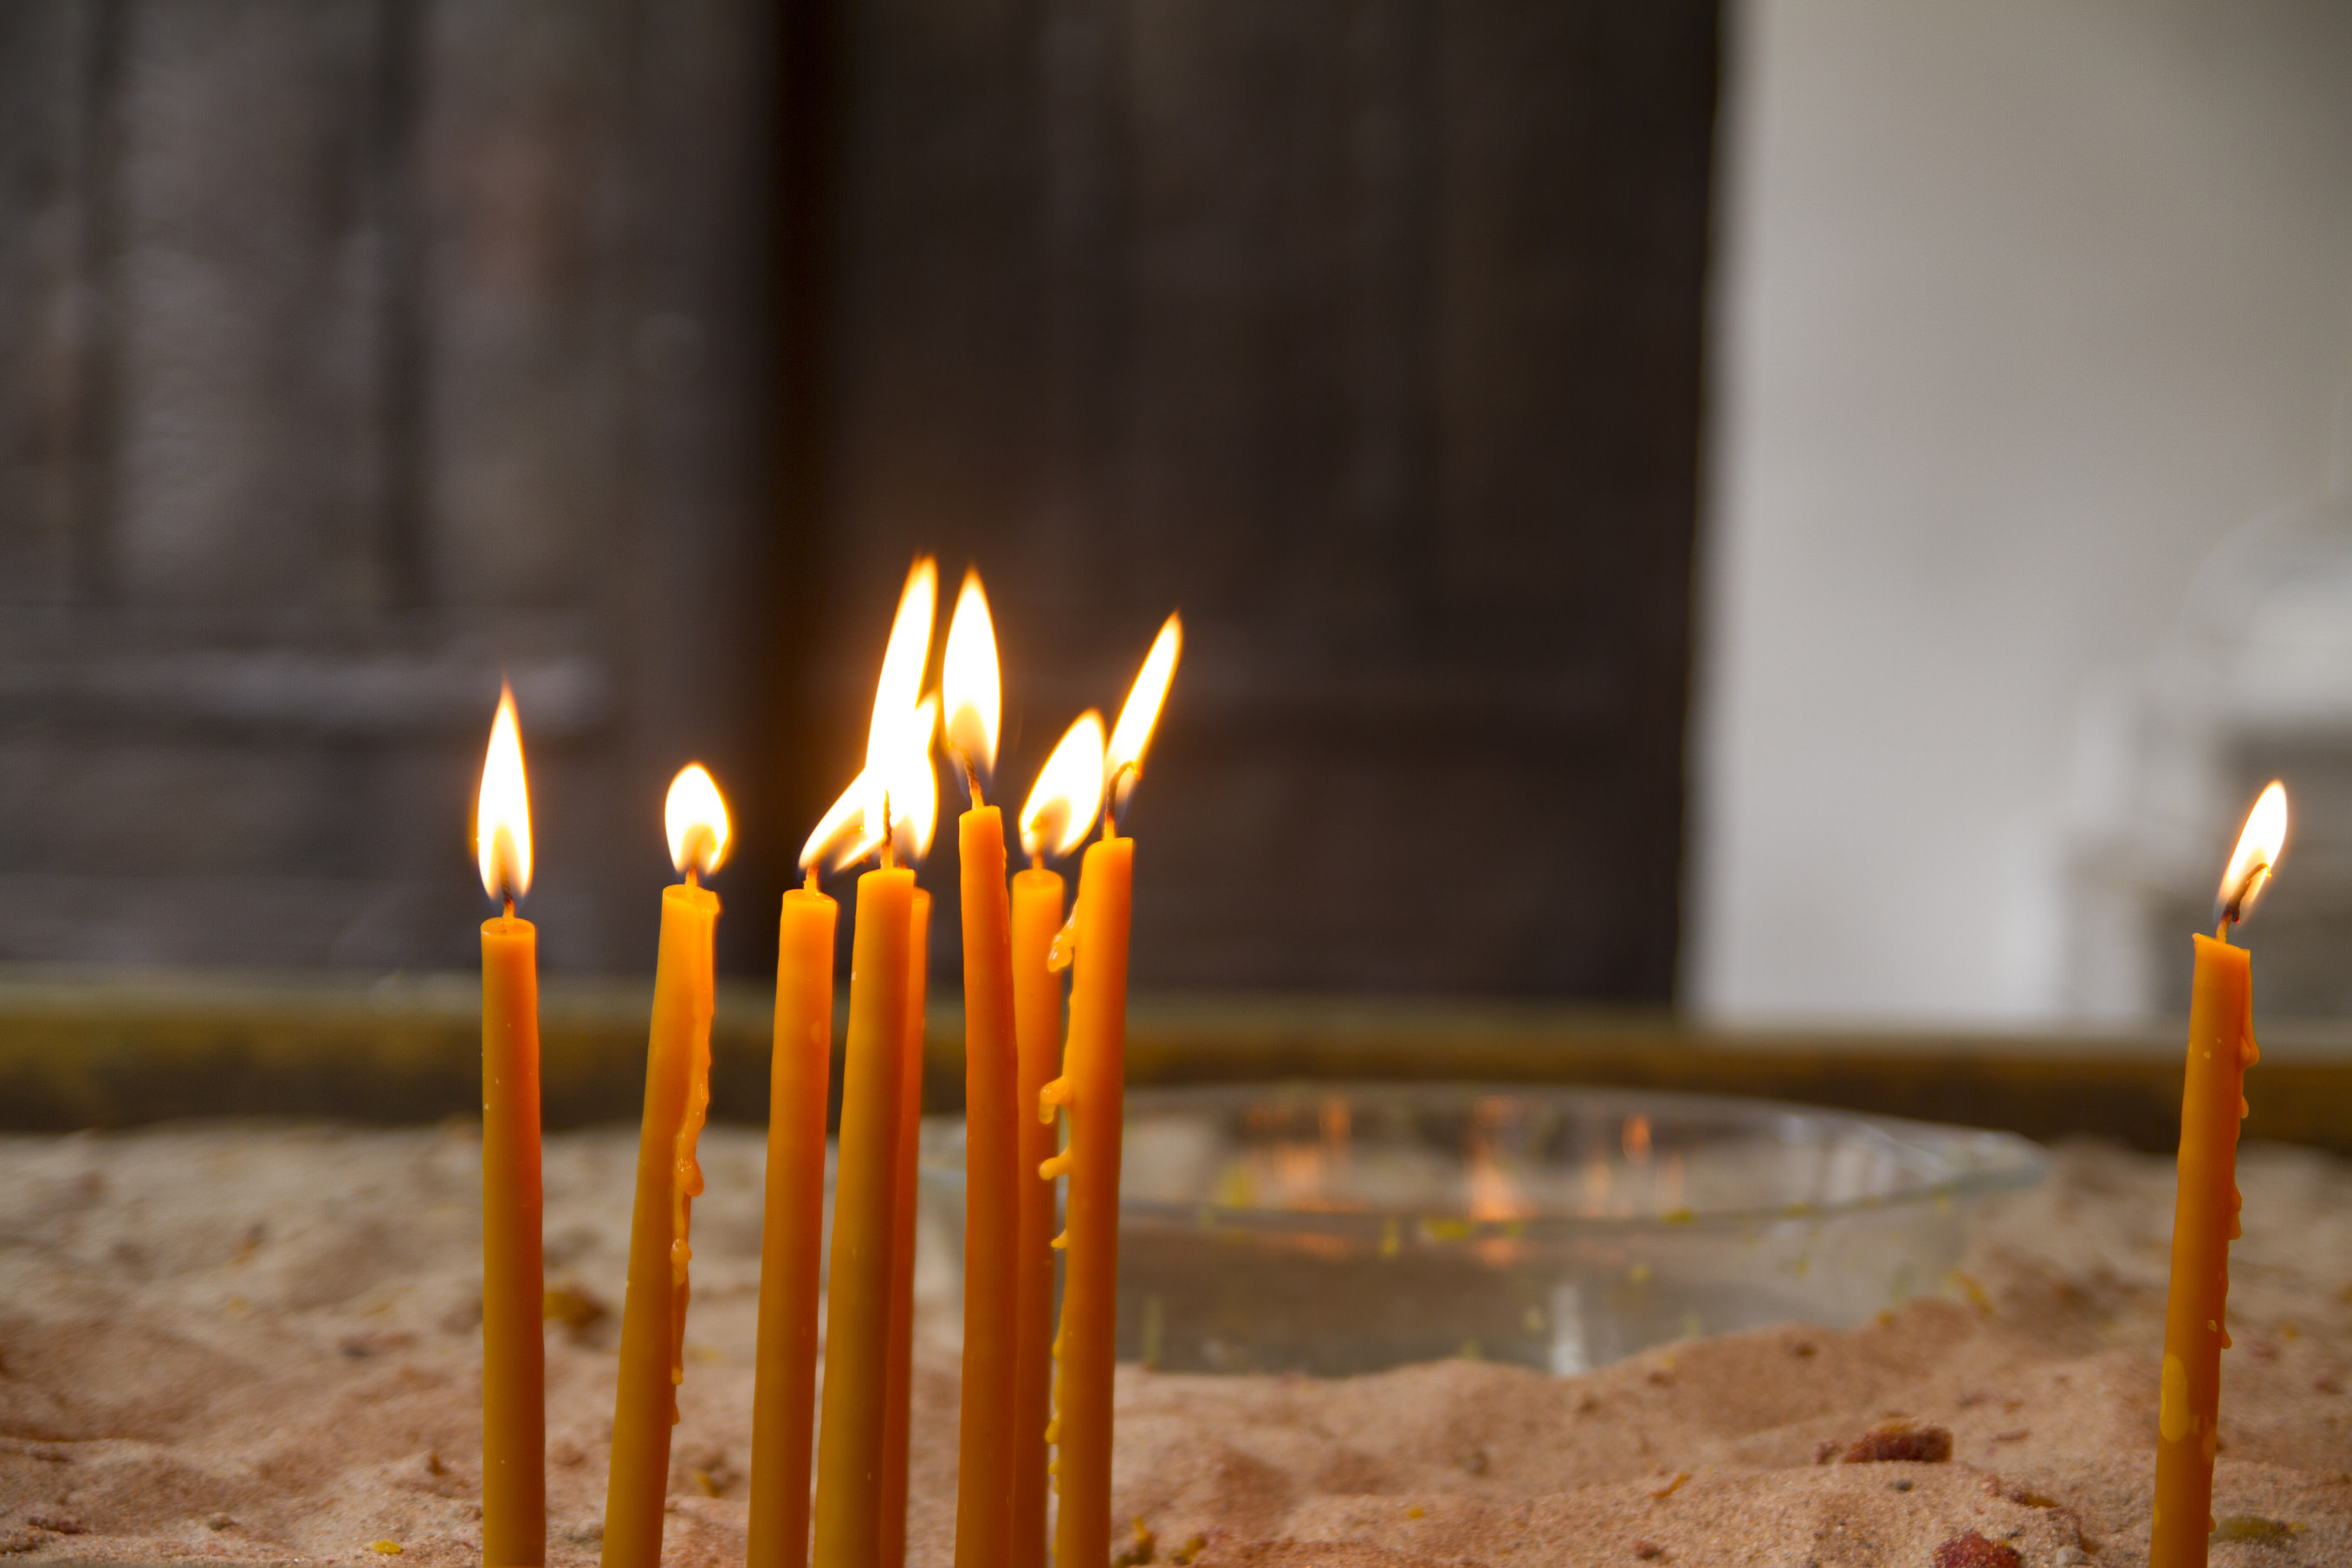 Few candles burning in the church.